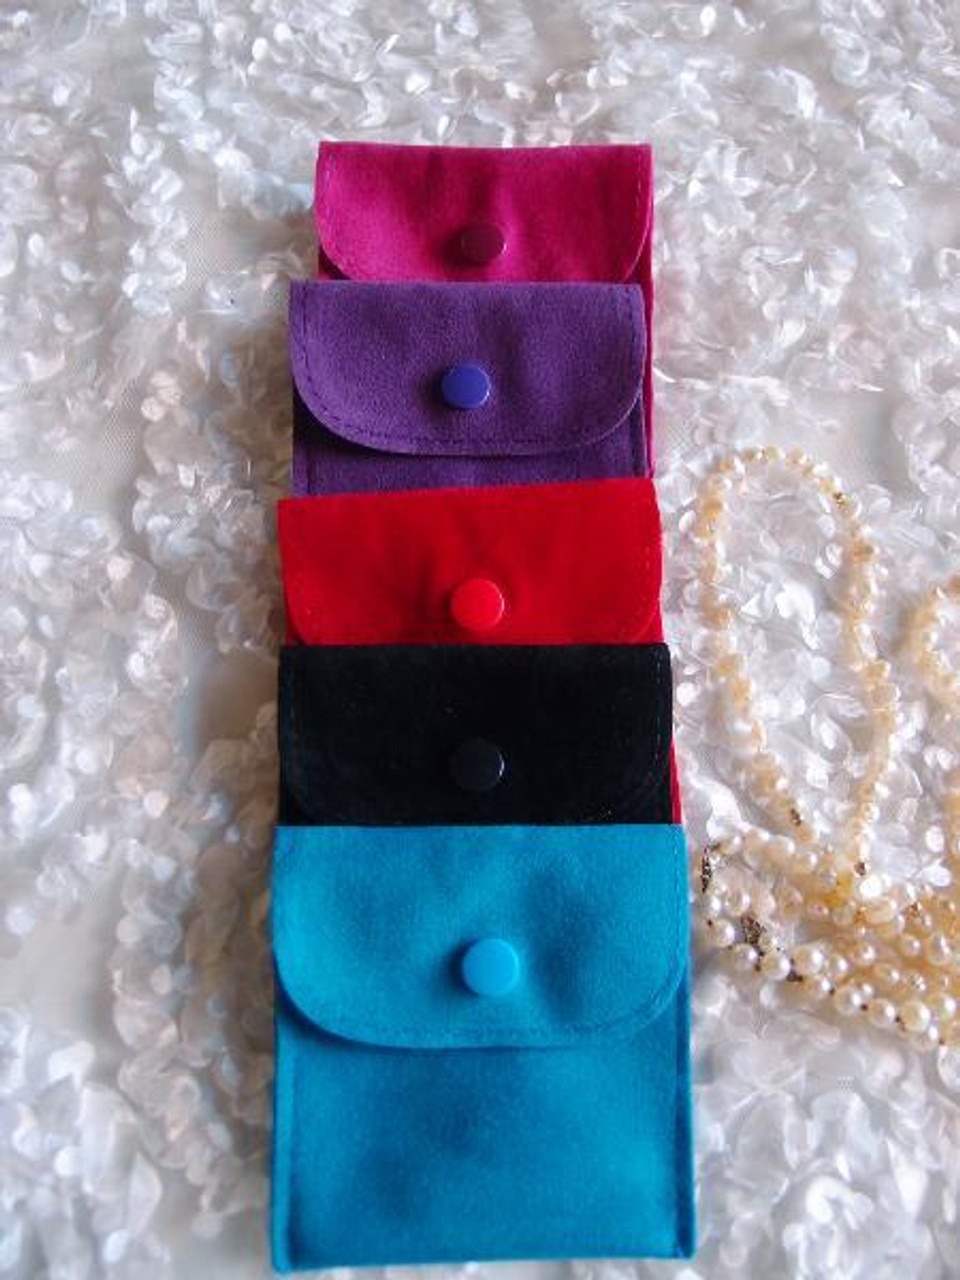 3 x 3 inches Red Velvet Flapover Jewelry Pouch with Snap Fastener (J134-12), Wholesale Velvet Jewelry Bags | Packaging Decor, Gift Packaging